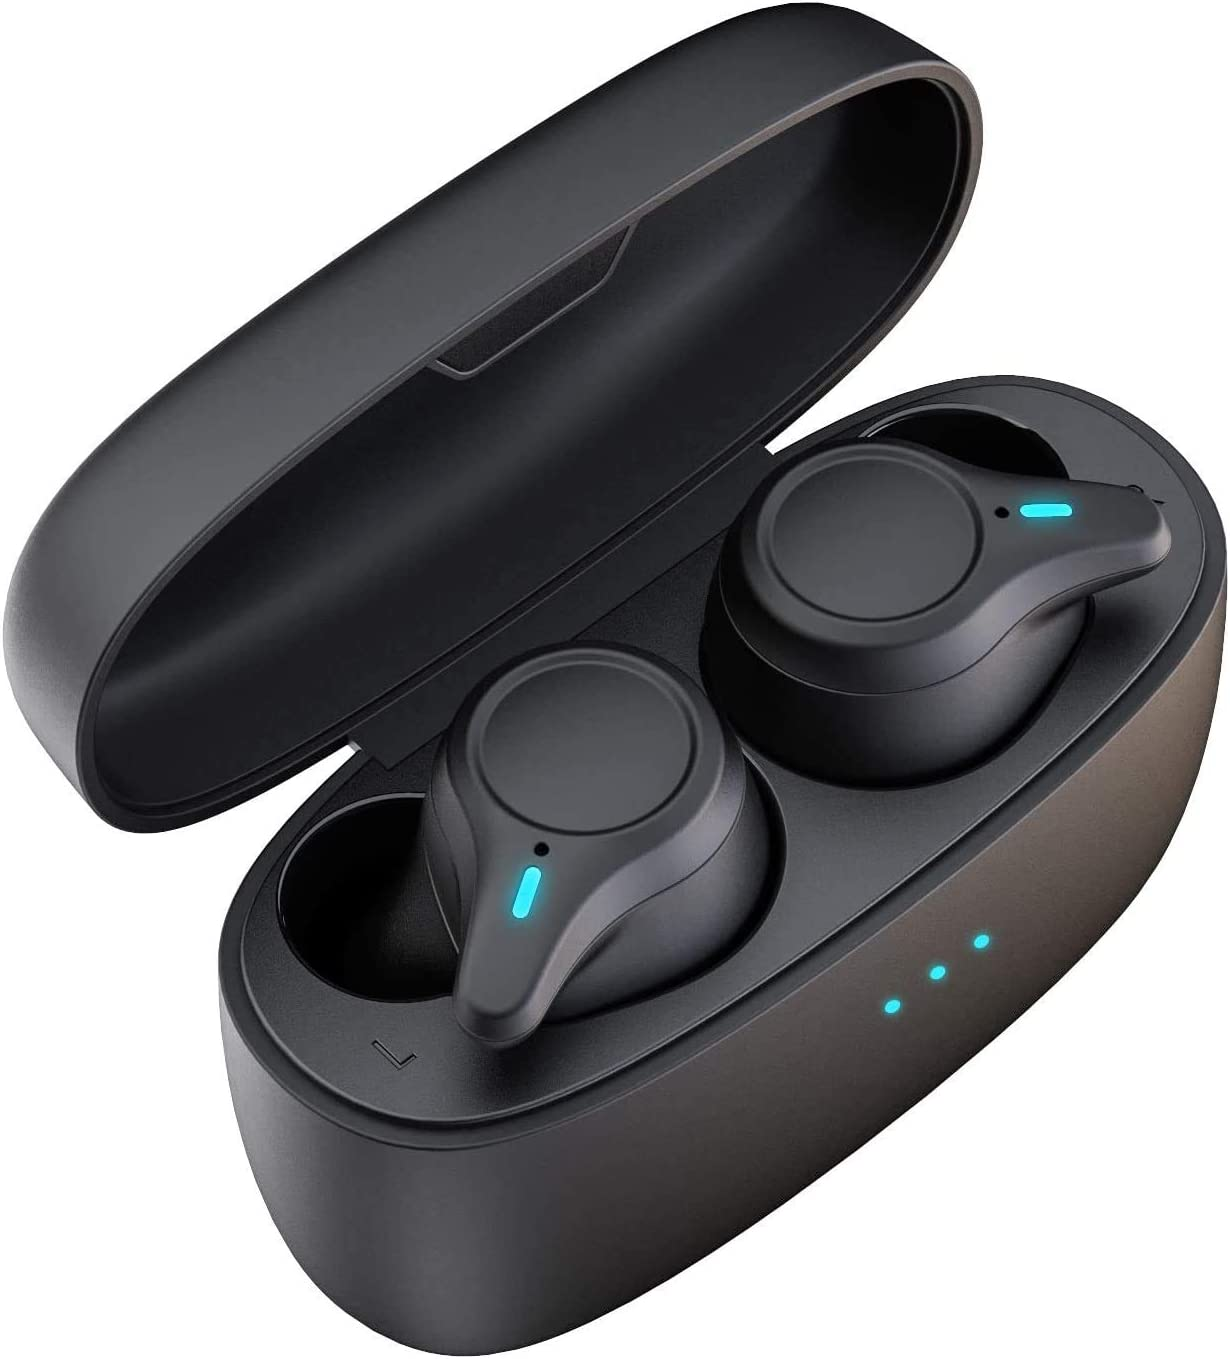 KOSETON E10 True Wireless Earbuds Black Bluetooth 5.0 Wireless in-Ear Headphones IPX5 Waterproof for Running and Sport, 30 Hour Battery, Reality Stereo Sound